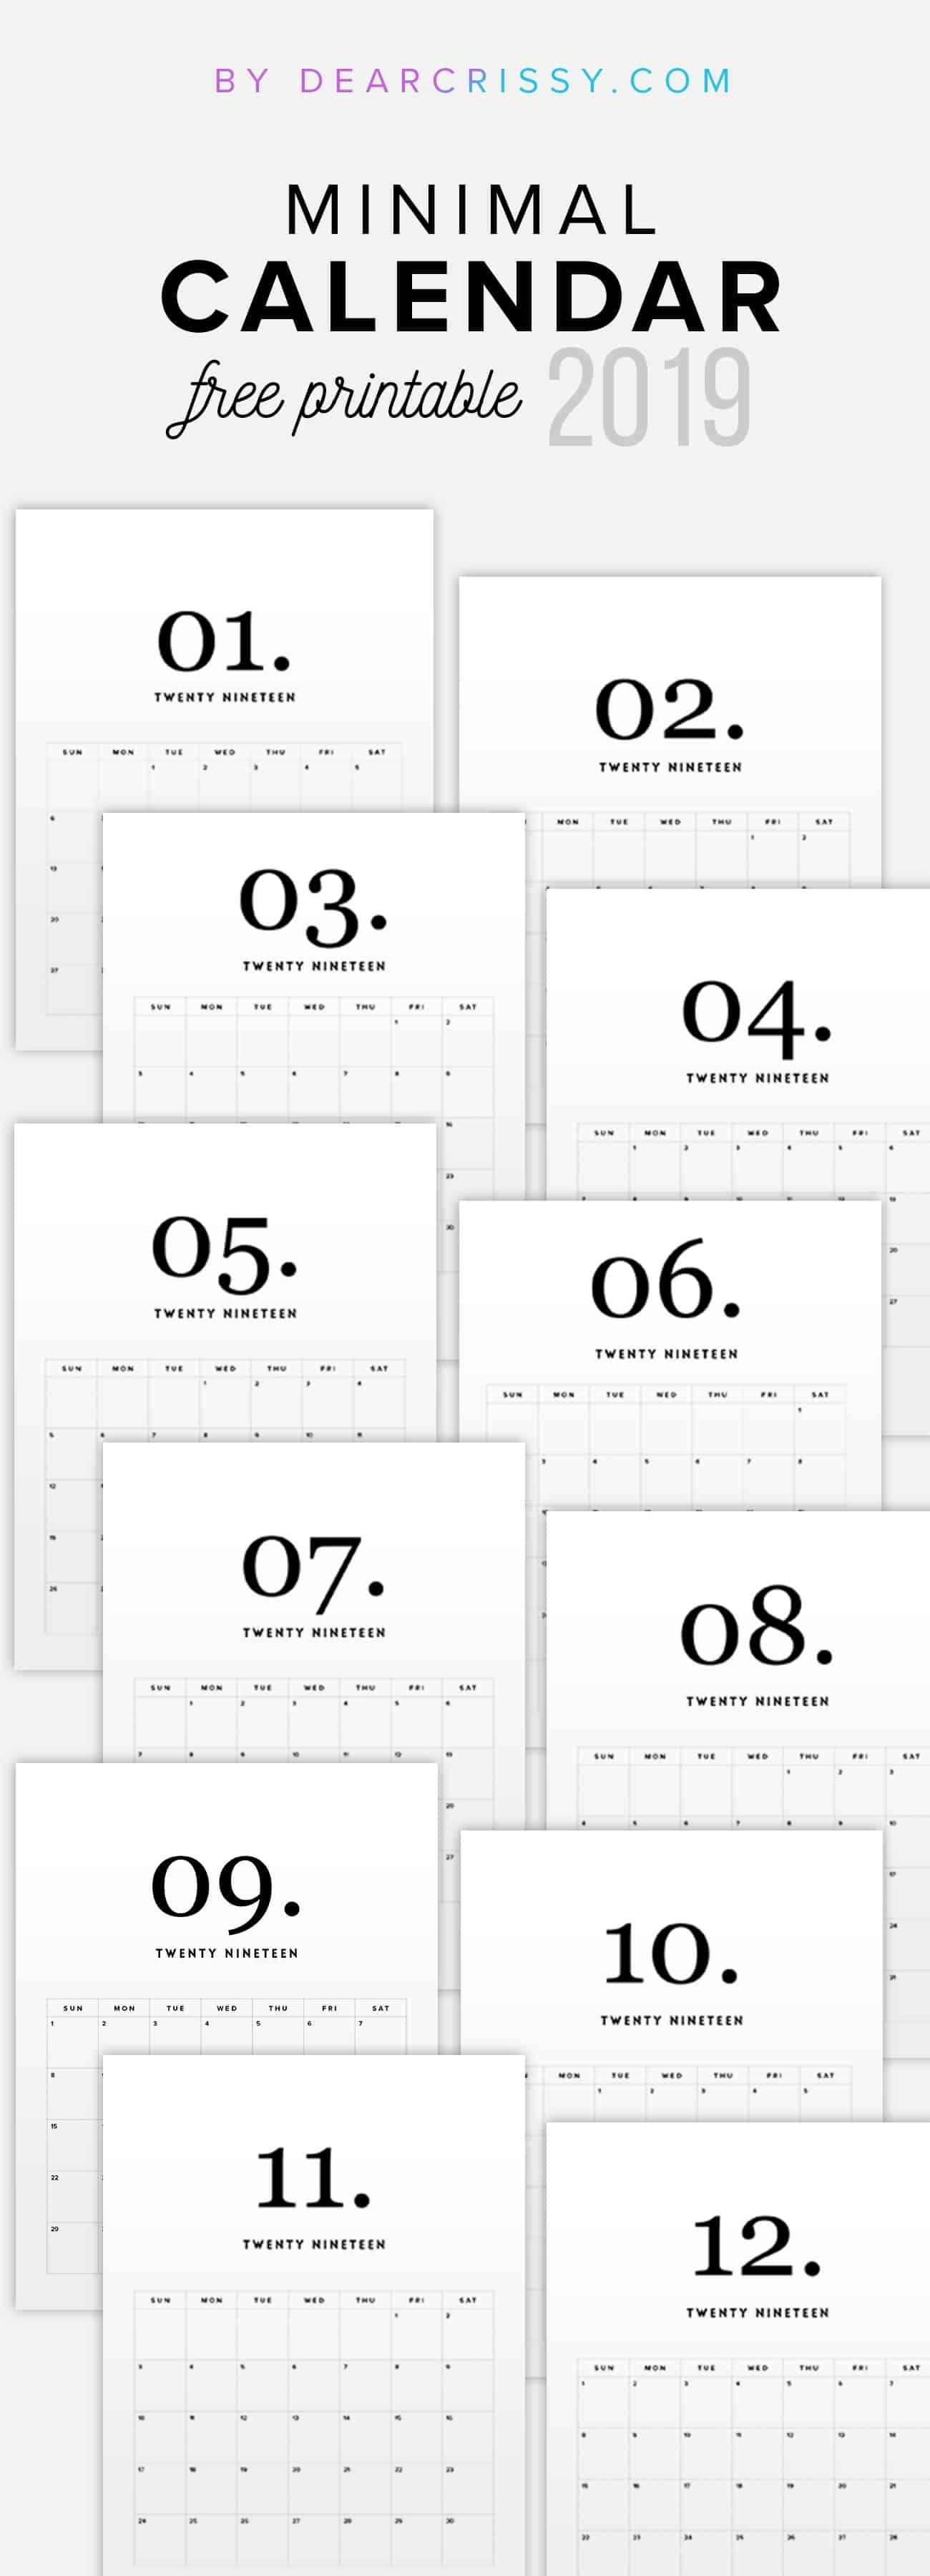 19 Free Printable Calendars To Kick Start The New Year